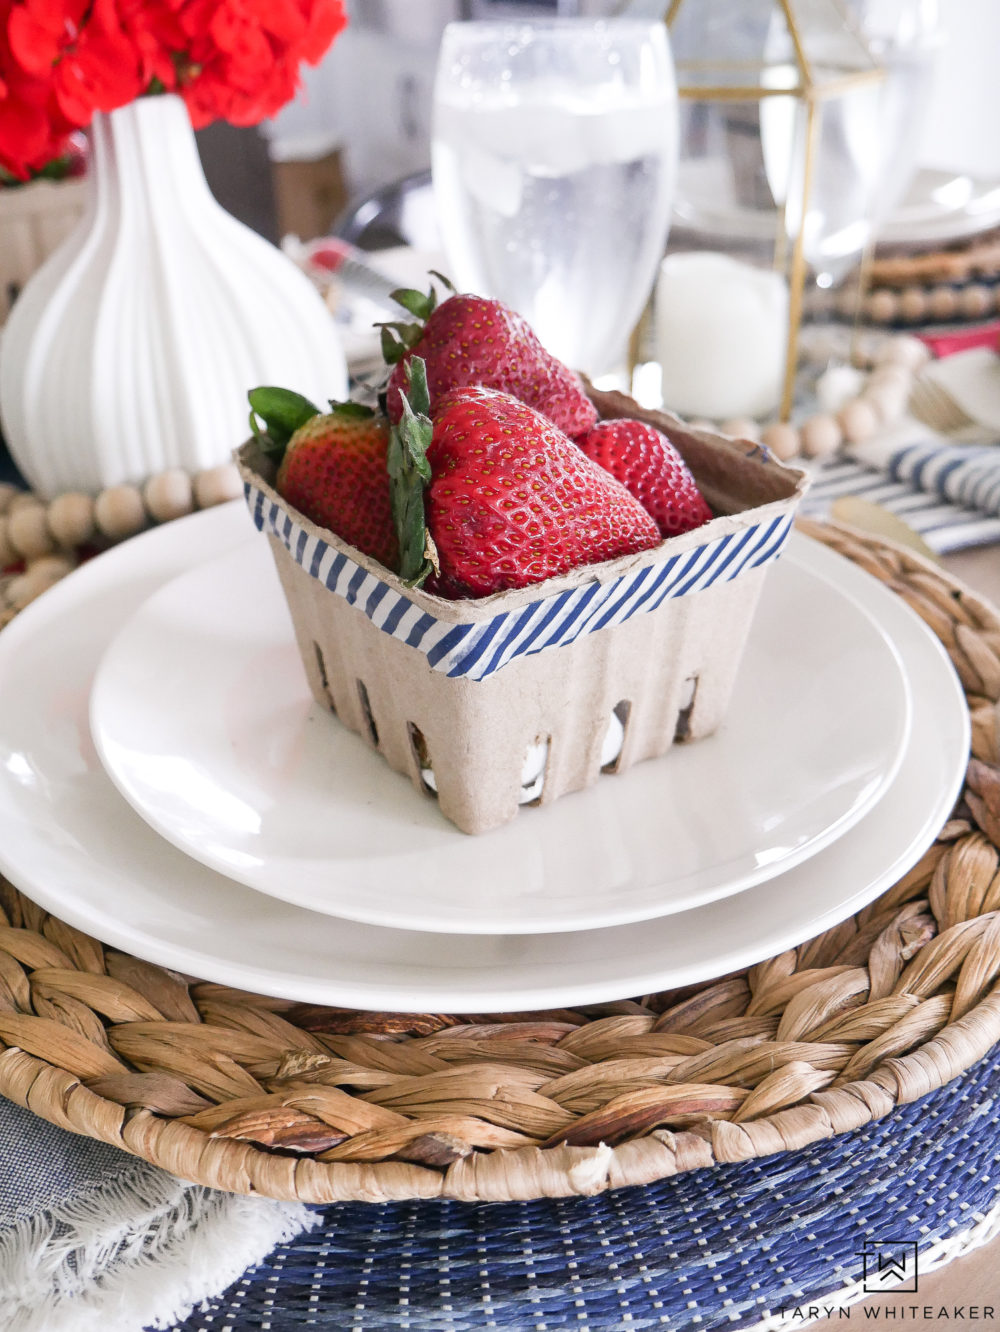 Using fresh berries in crates on each place setting creates an inviting look and is so practical.